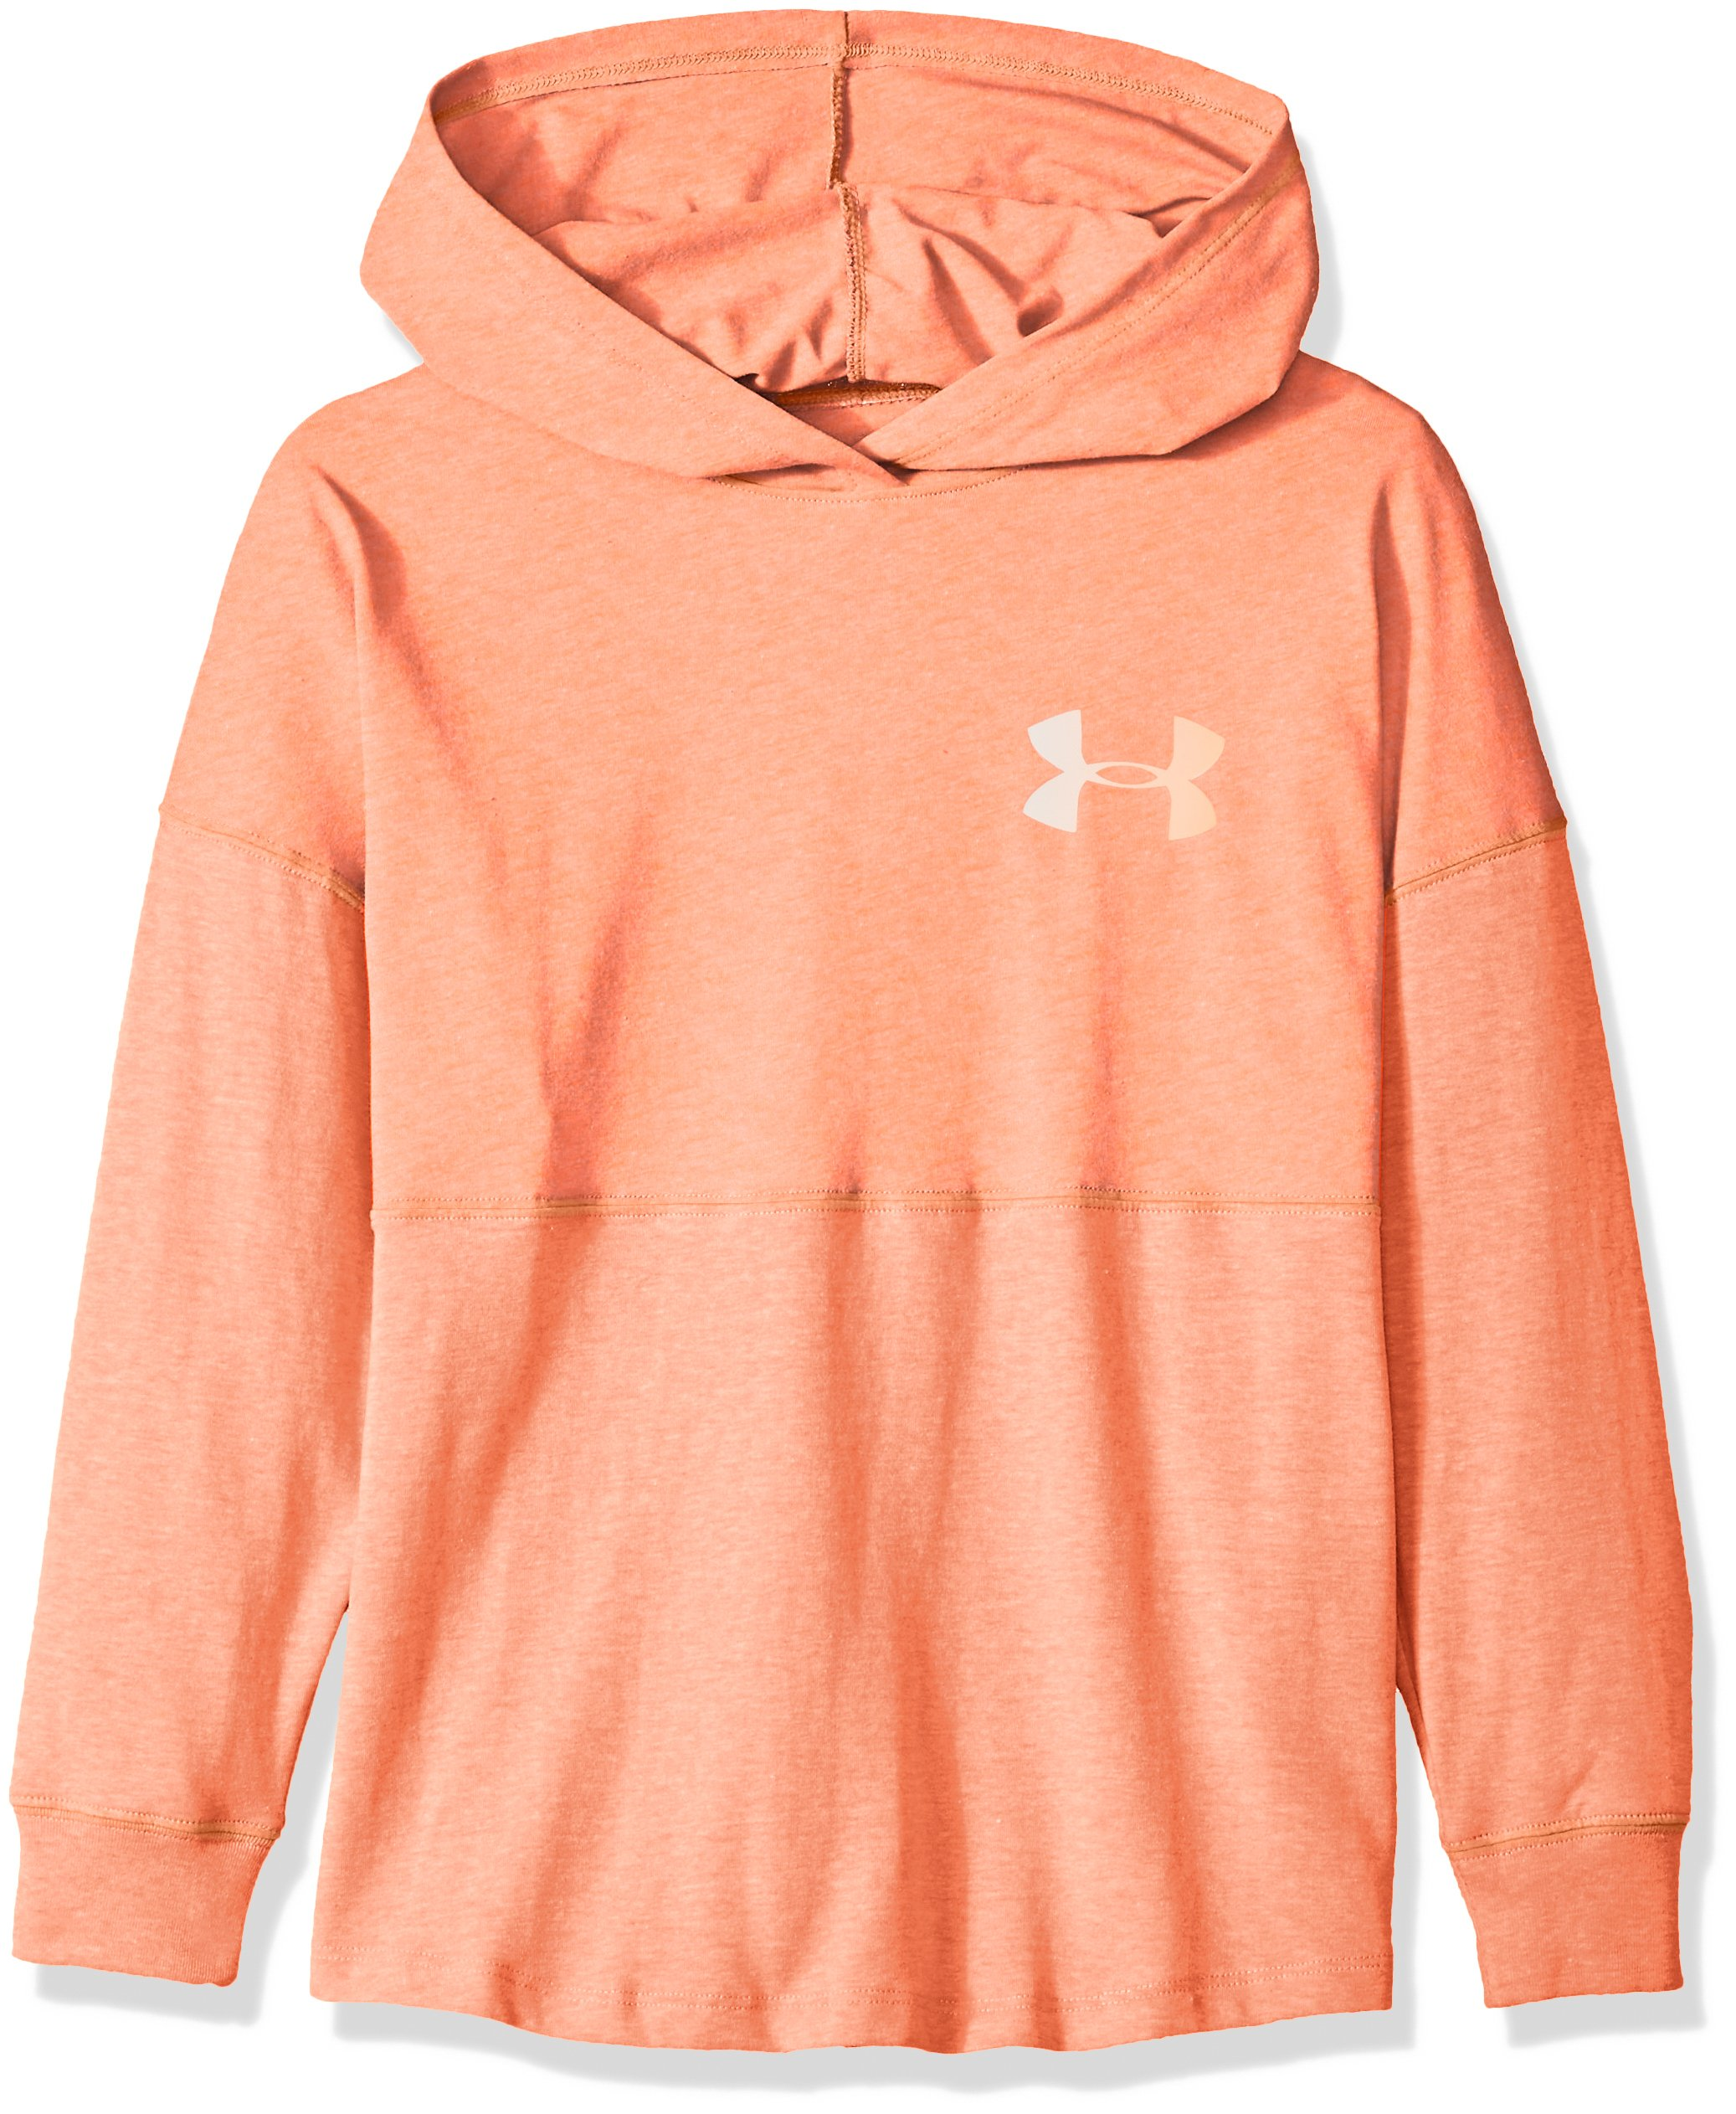 Under Armour Girls' Finale Hoodie, After Burn Light Hea (877)/Peach Horizon, Youth Medium by Under Armour